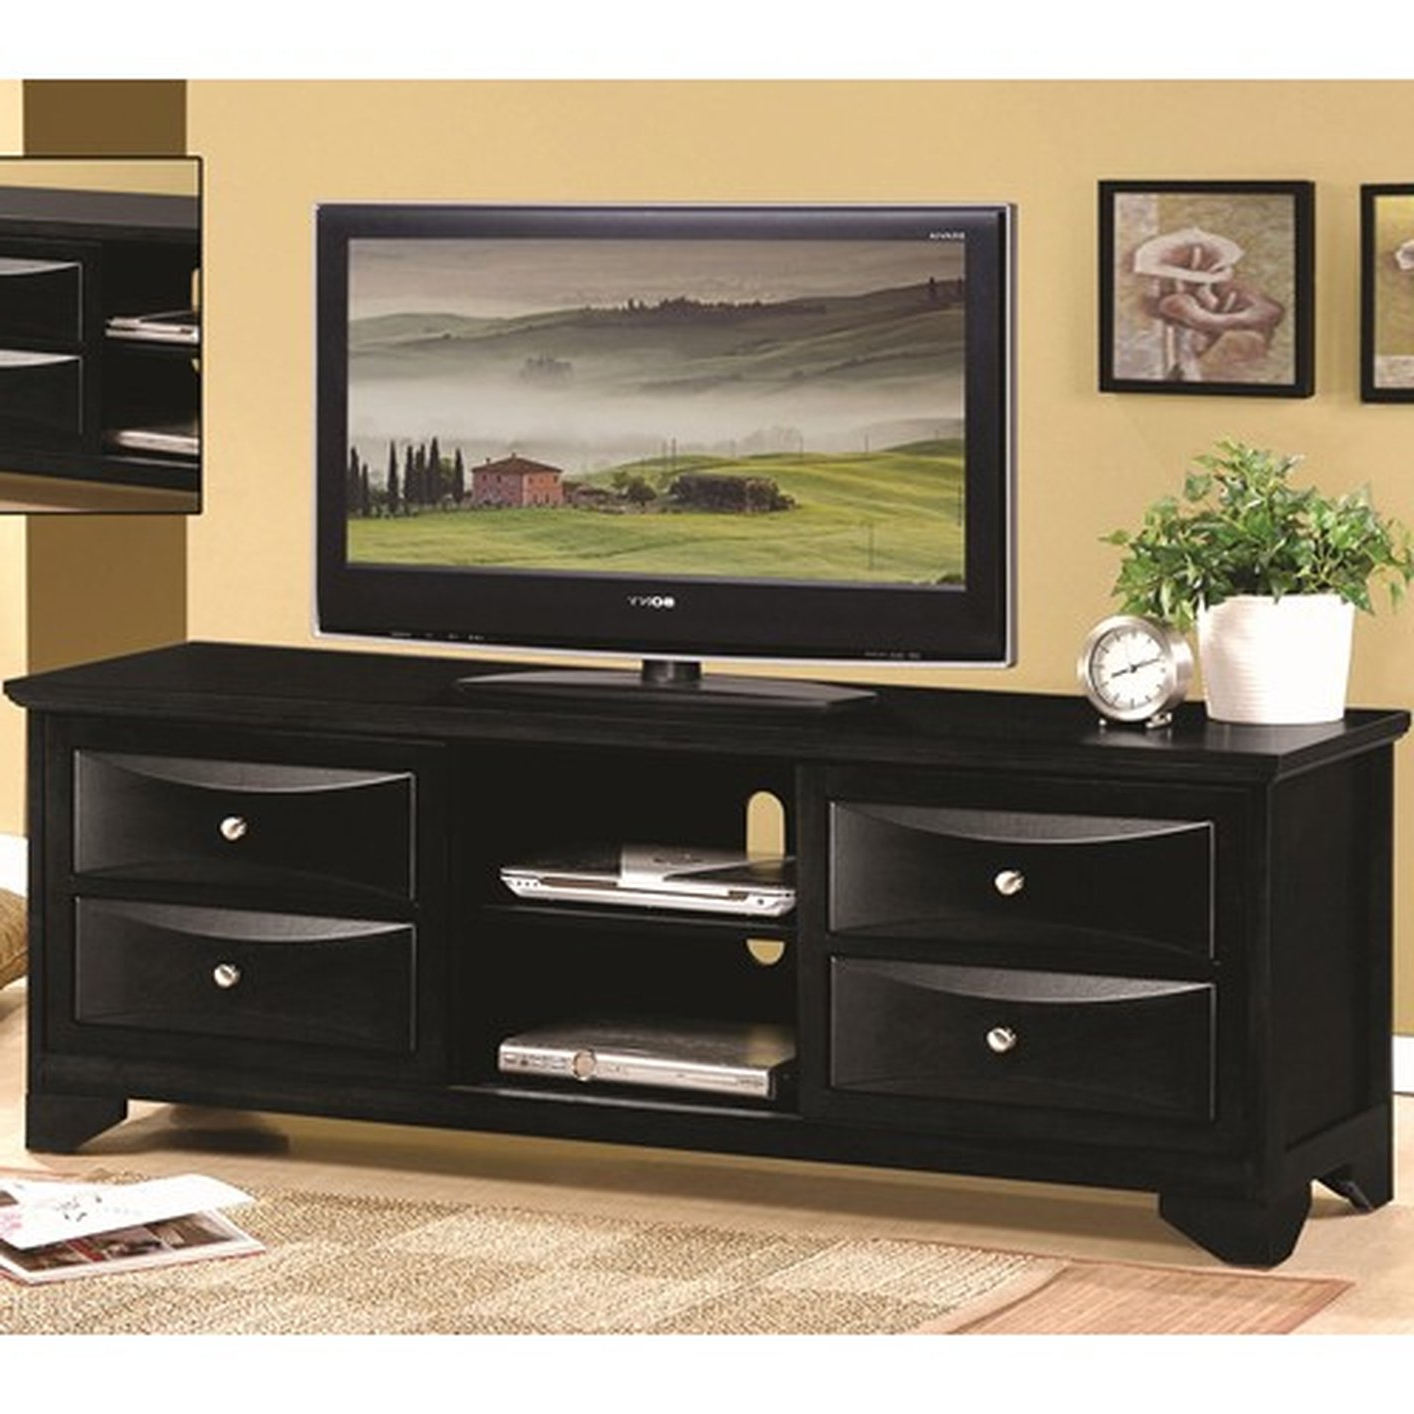 Black Wood Tv Stand – Steal A Sofa Furniture Outlet Los In Edgeware Black Tv Stands (View 3 of 20)